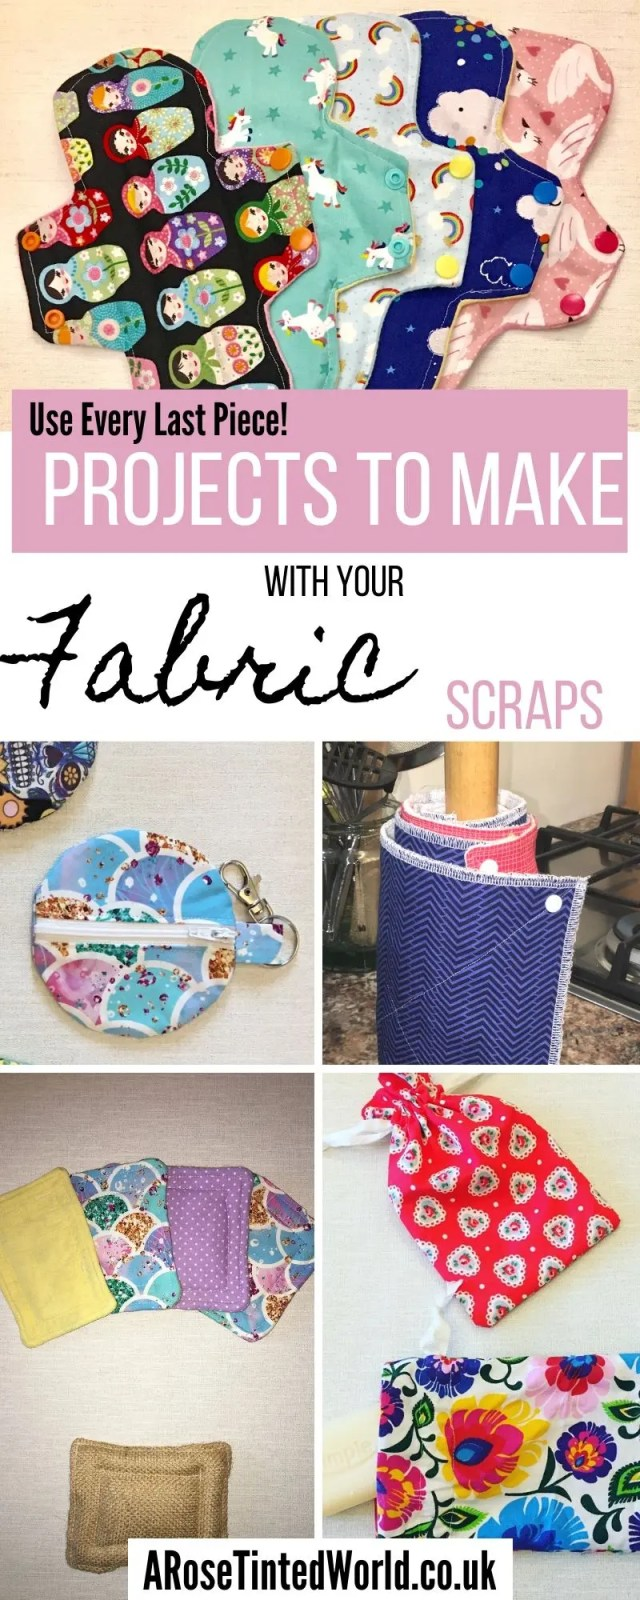 What can I make from Fabric scraps? How to use up all the small remnants of cloth in your scrap bag. Zero waste ways to make great gifts- using up waste fabric and up cycling old cloth to make other things #zerowaste #recycled #upcycled #fabricscraps #scrunchies #giftideas